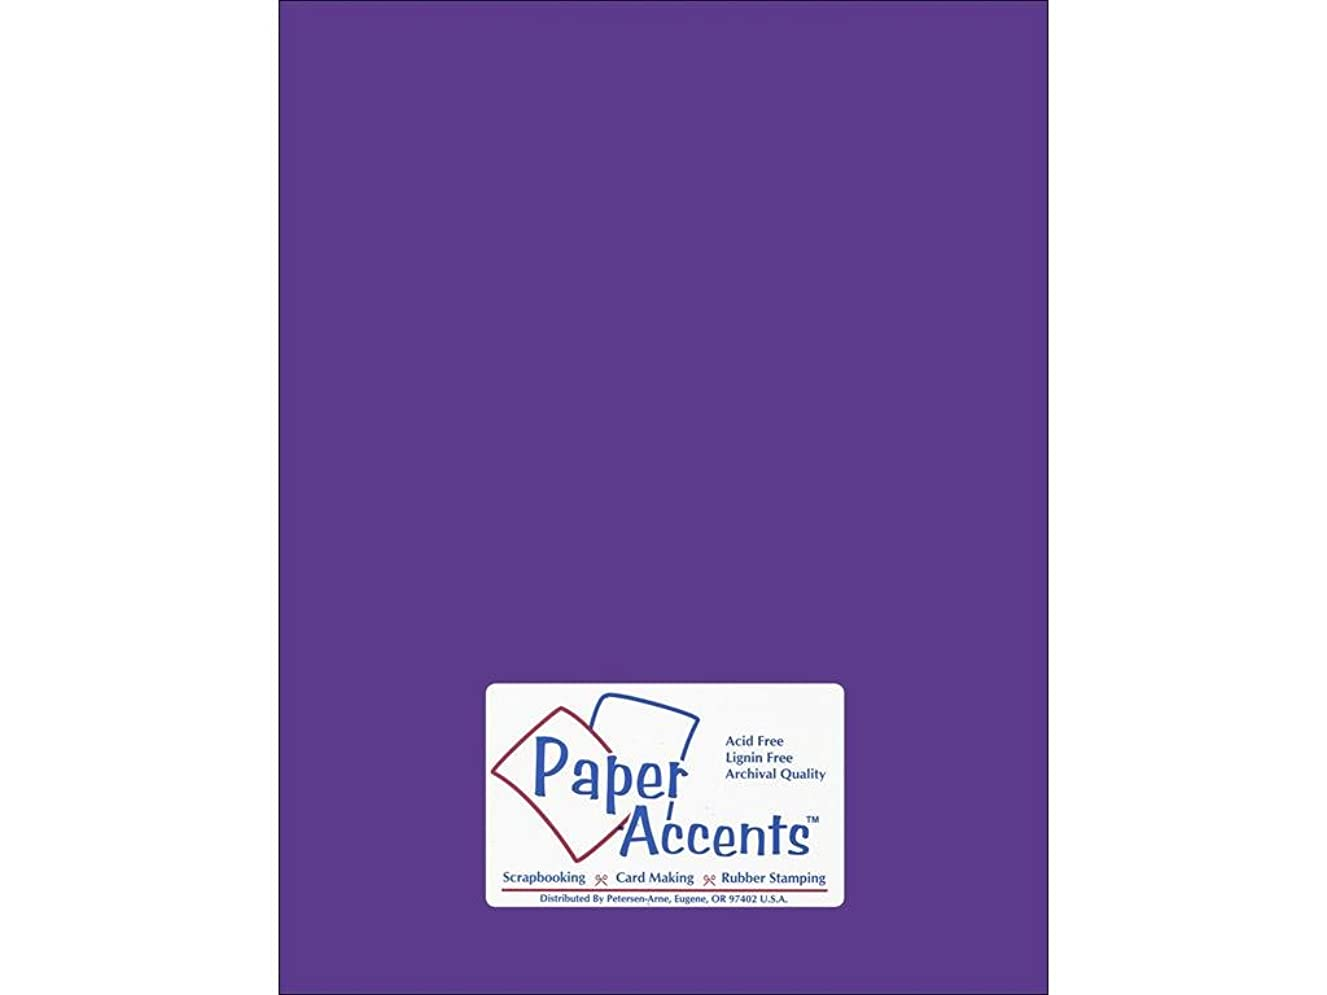 Accent Design Paper Accents Cdstk Smooth 8.5x11 74# Concord Grape